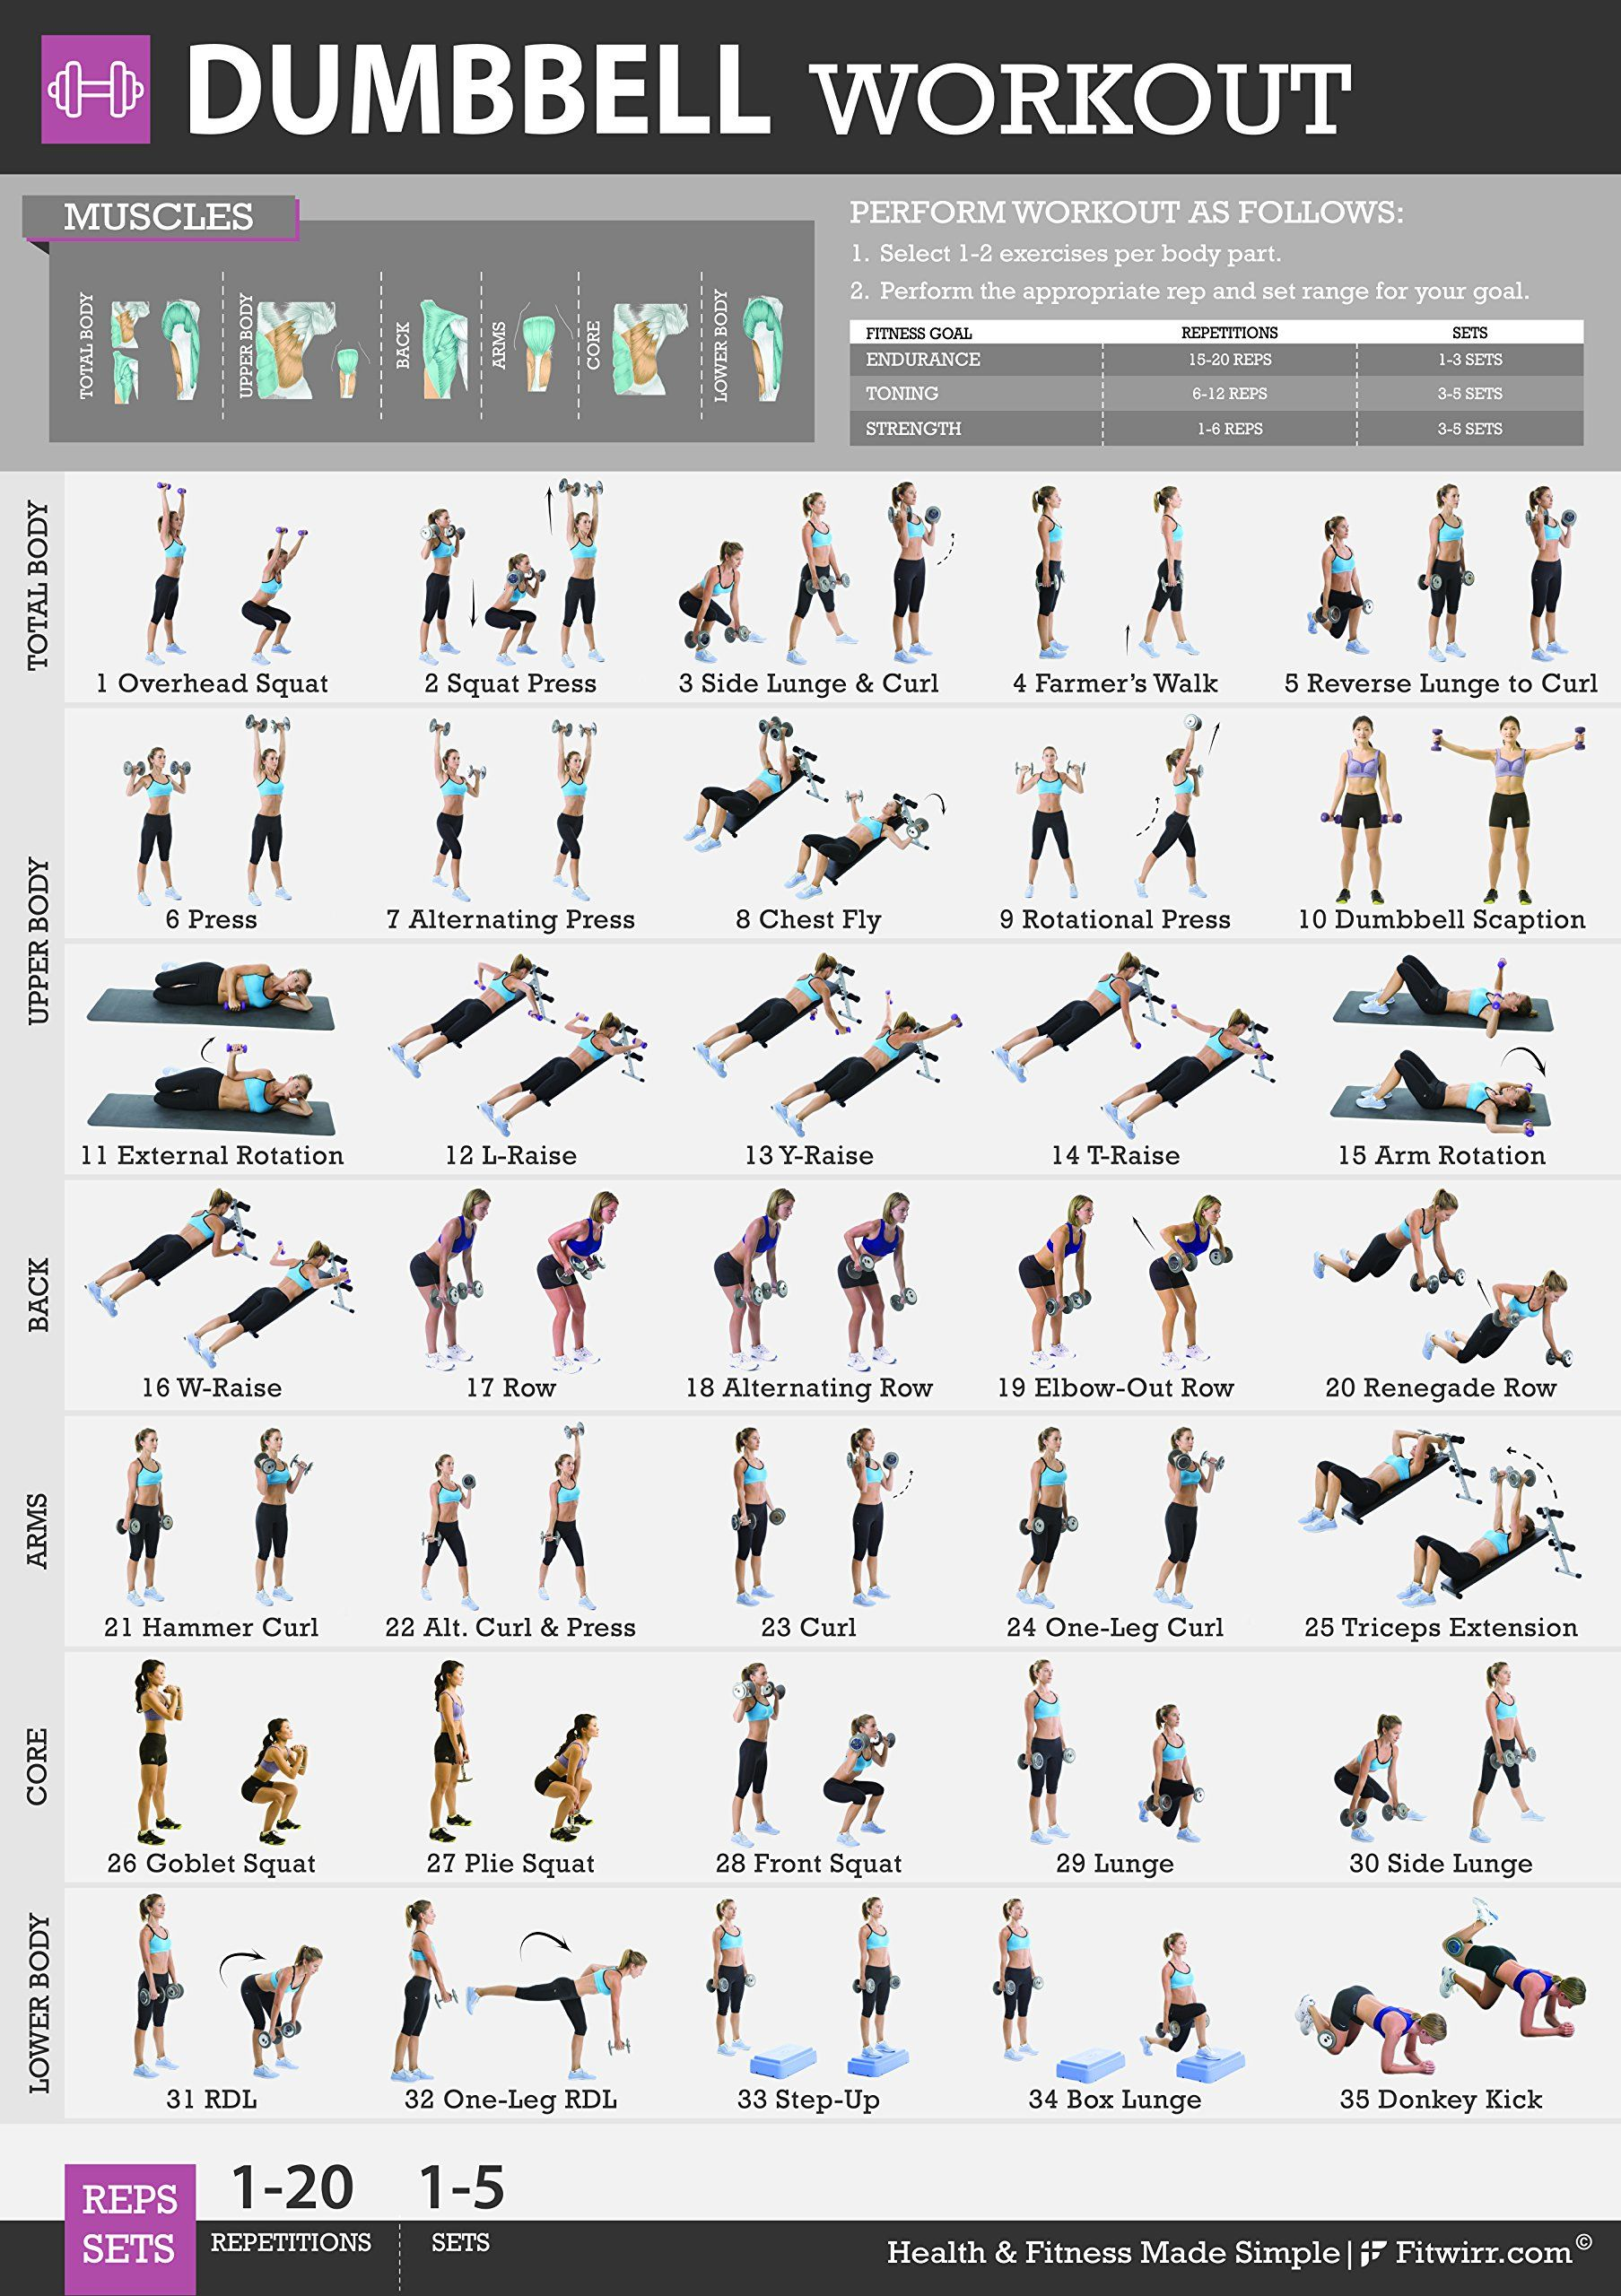 Fitwirr Dumbbell Workouts For Women Poster 19X27 This Workout Features 35 Exercises To Do At Home Lose Weight A Great